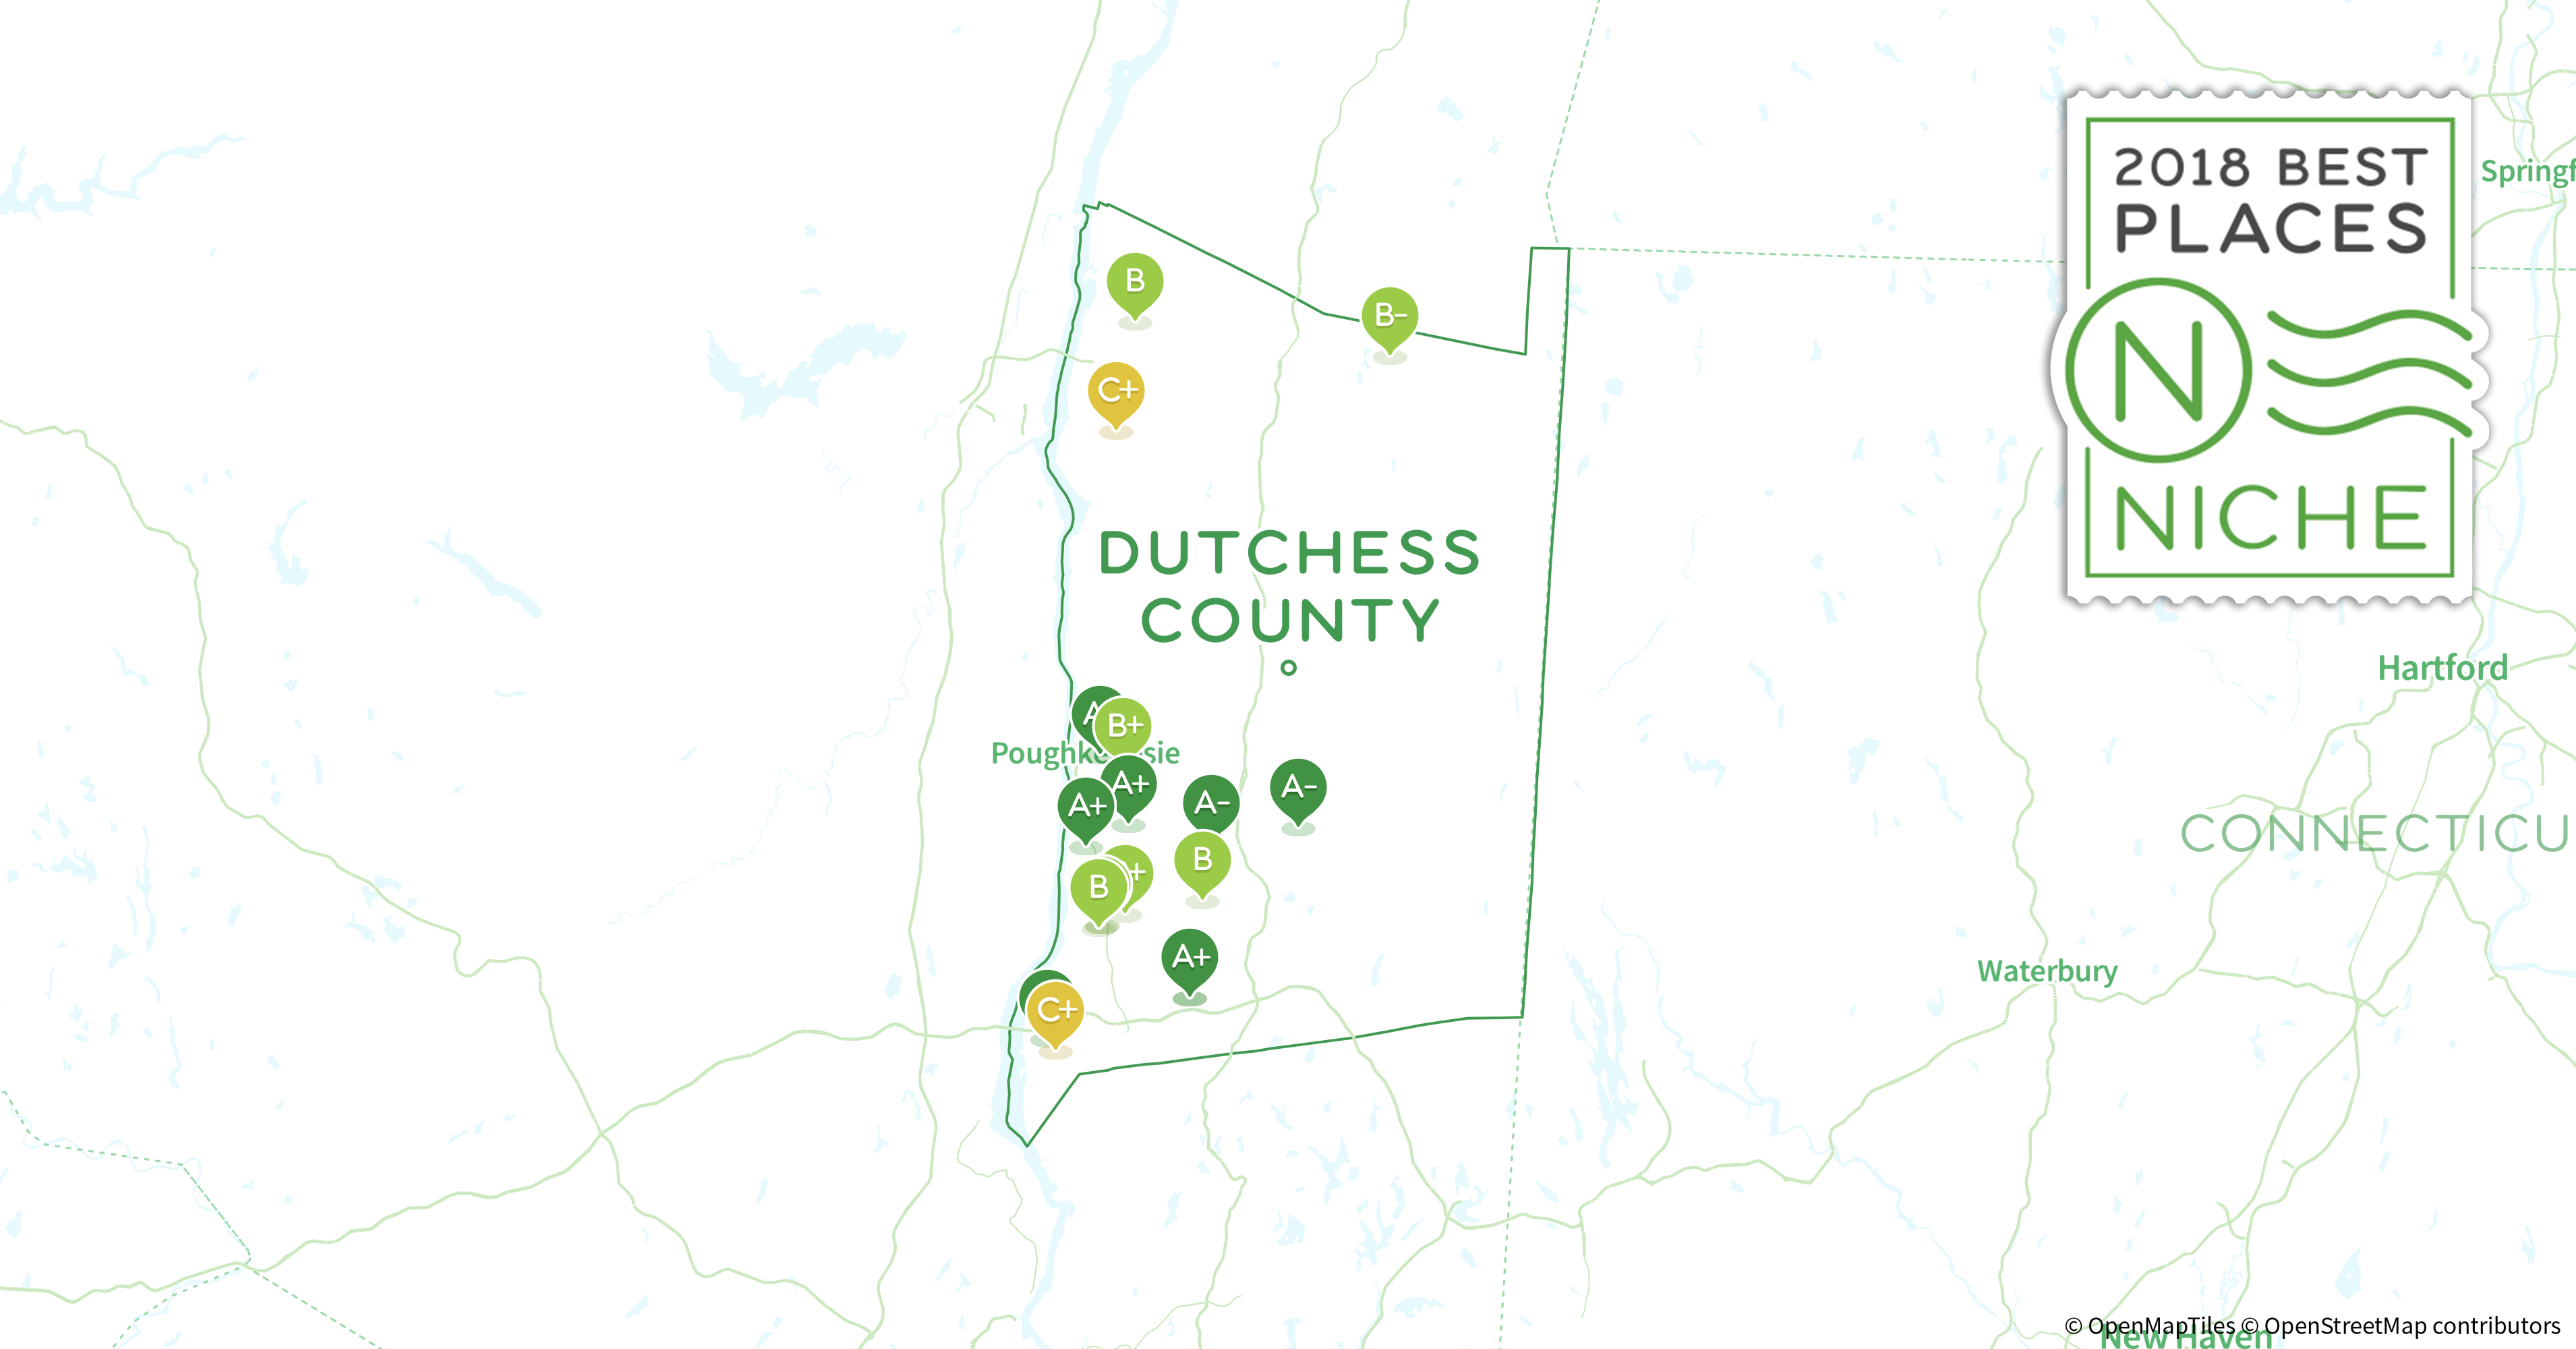 2018 Best Places to Live in Dutchess County, NY - Niche